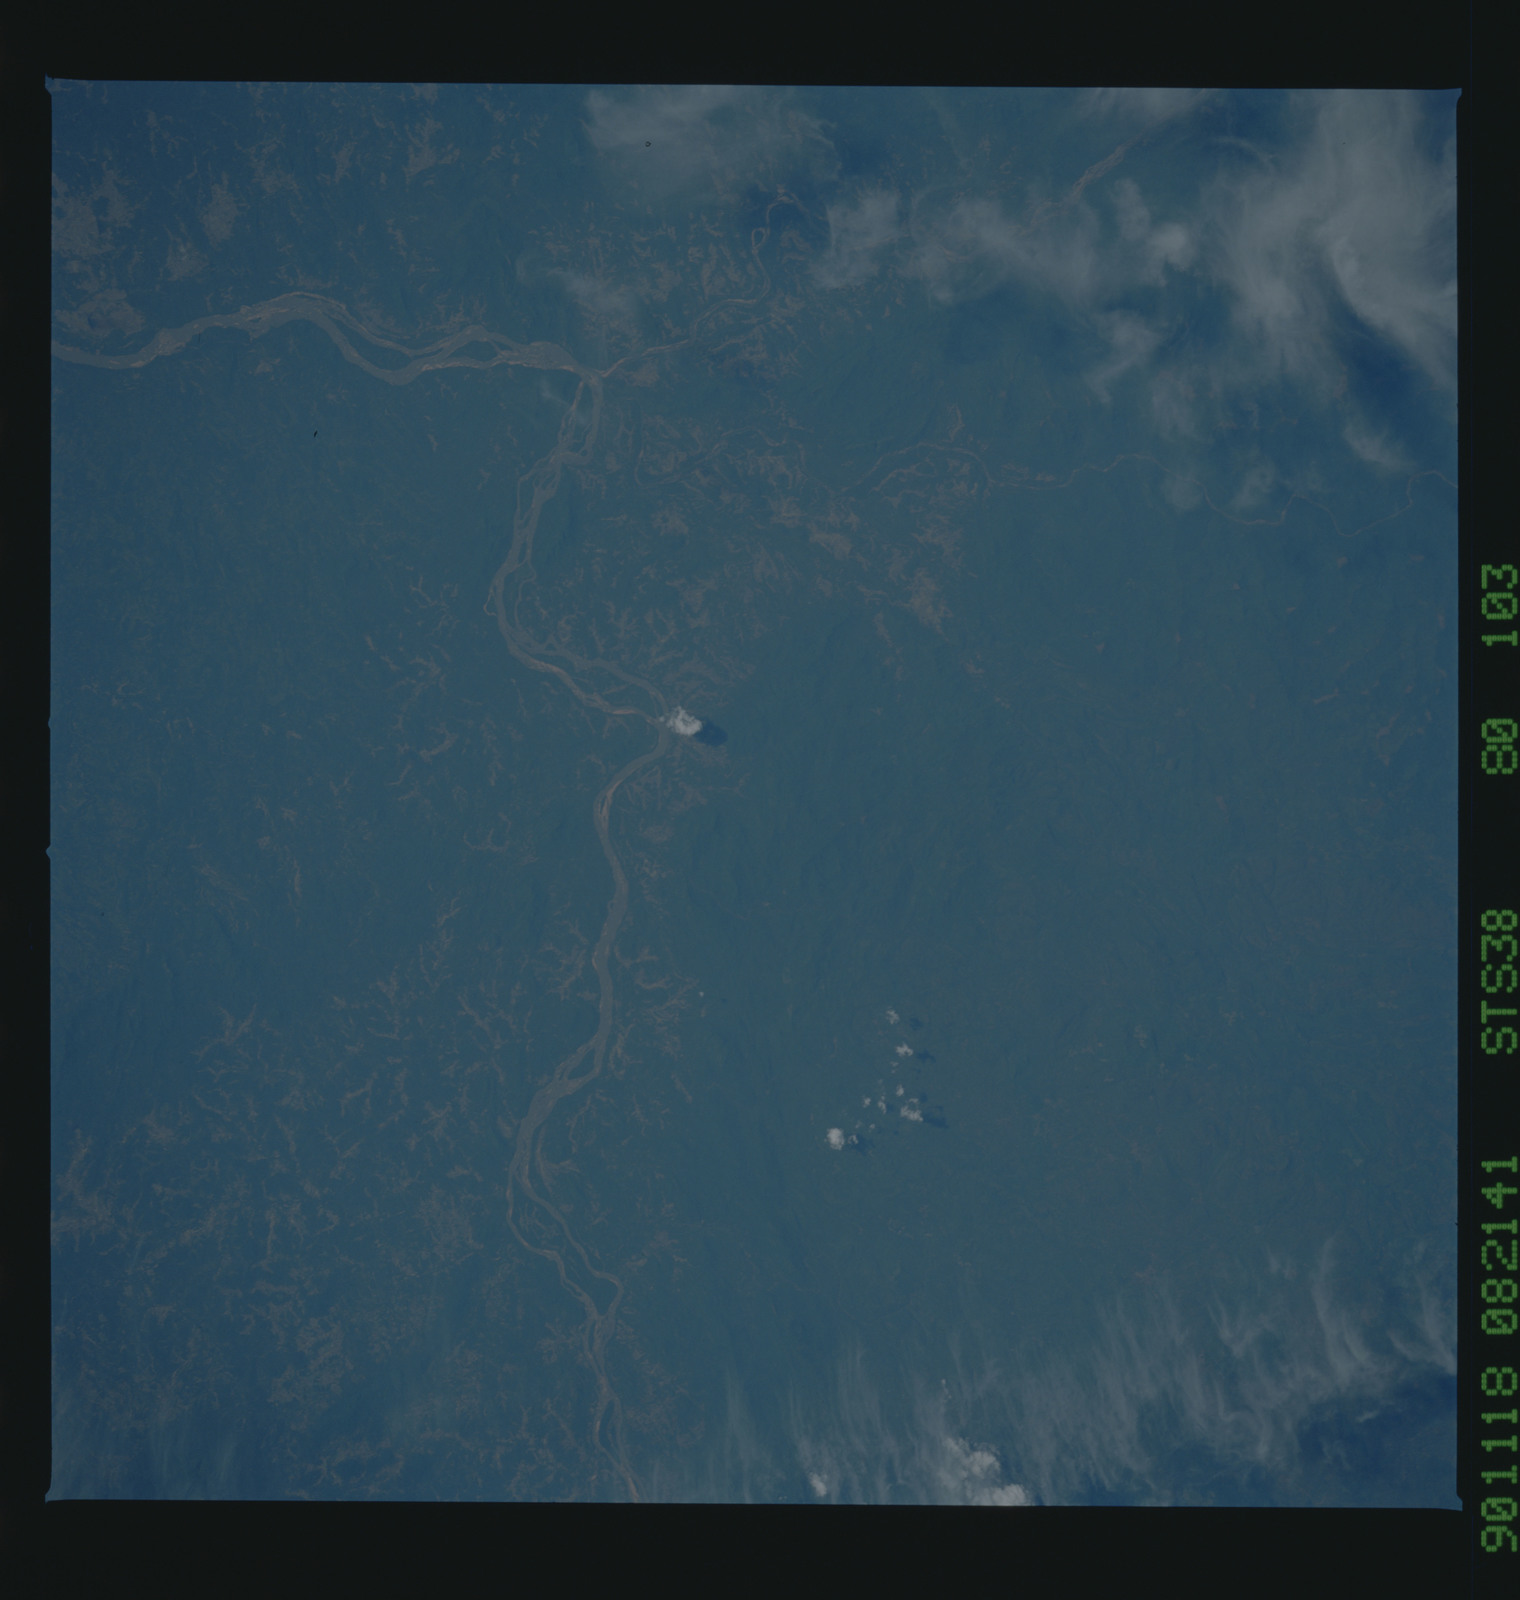 S38-80-103 - STS-038 - STS-38 earth observations